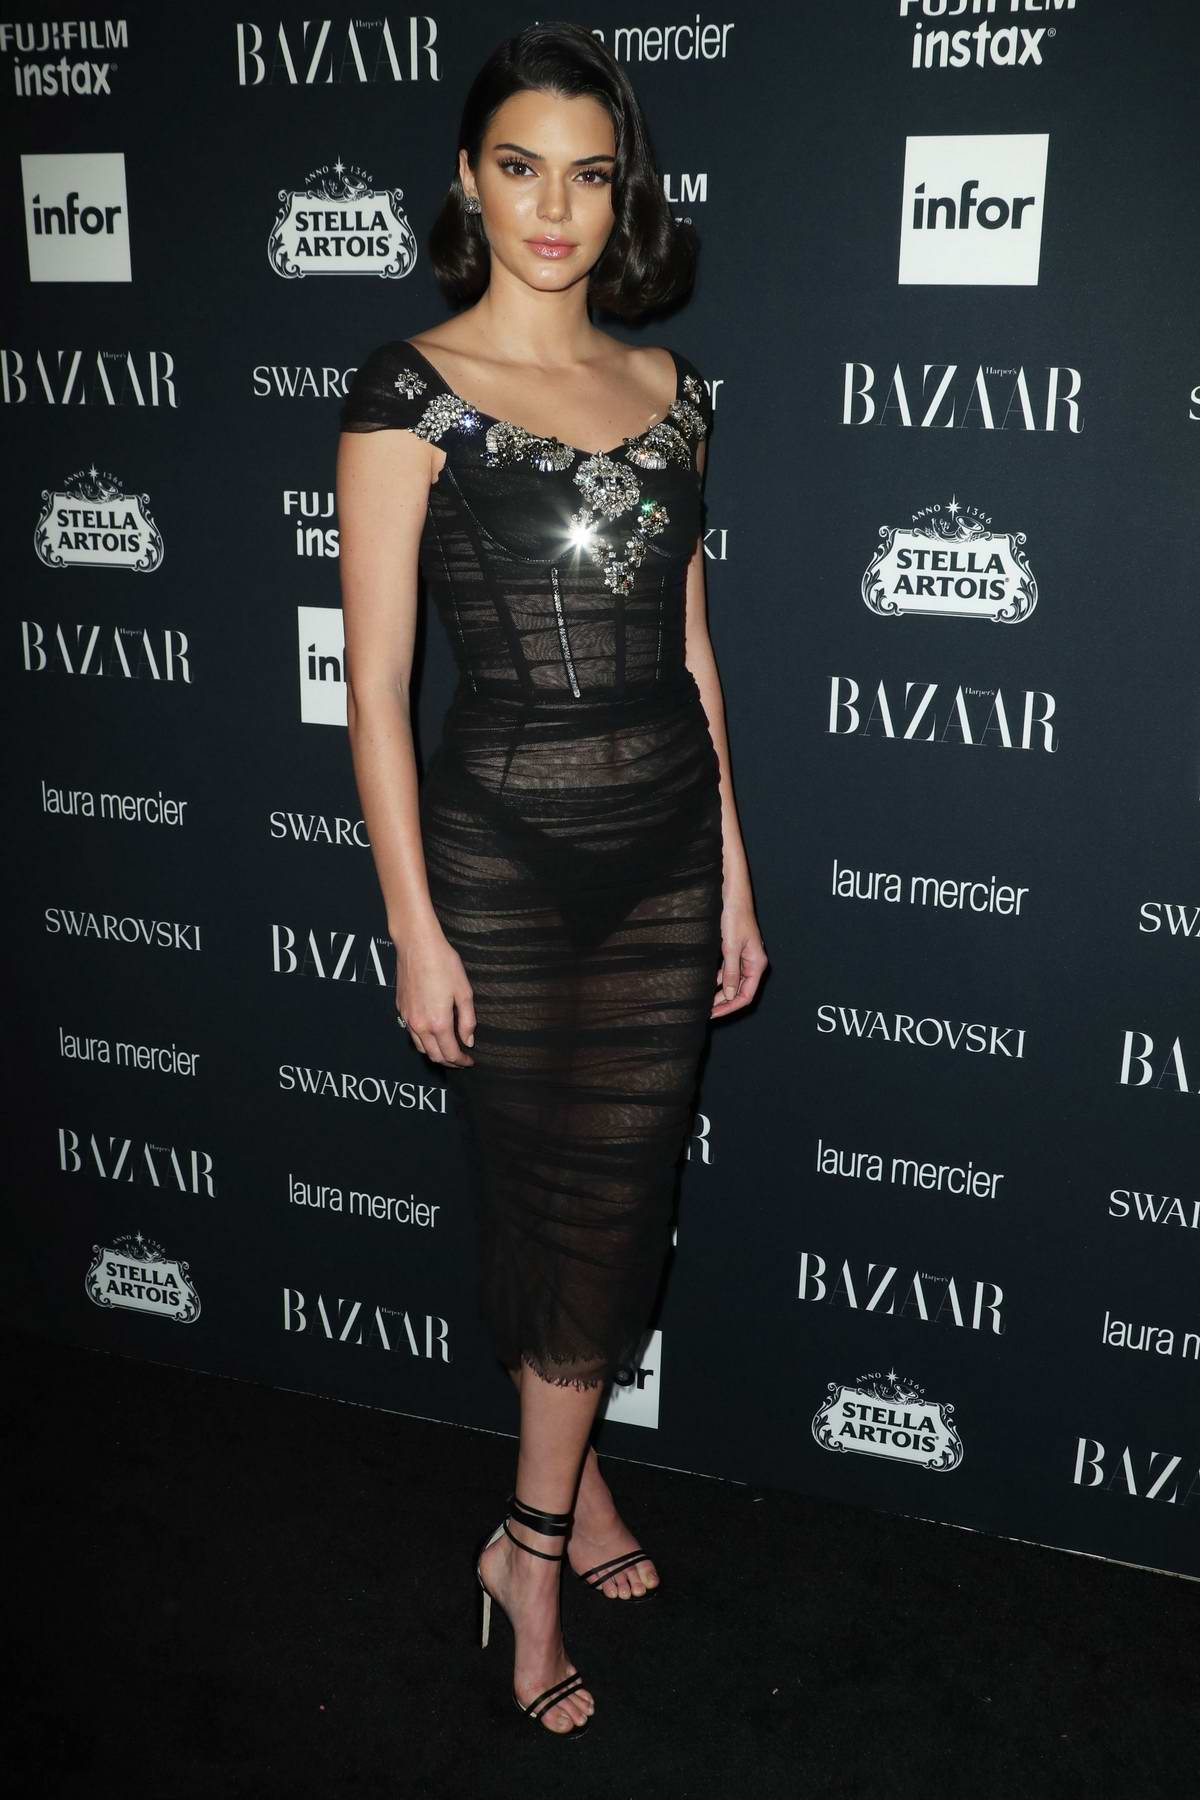 51216975_kendall-jenner-at-the-harpers-bazaar-icons-party-at-new-york-fashion-week-080917.jpg